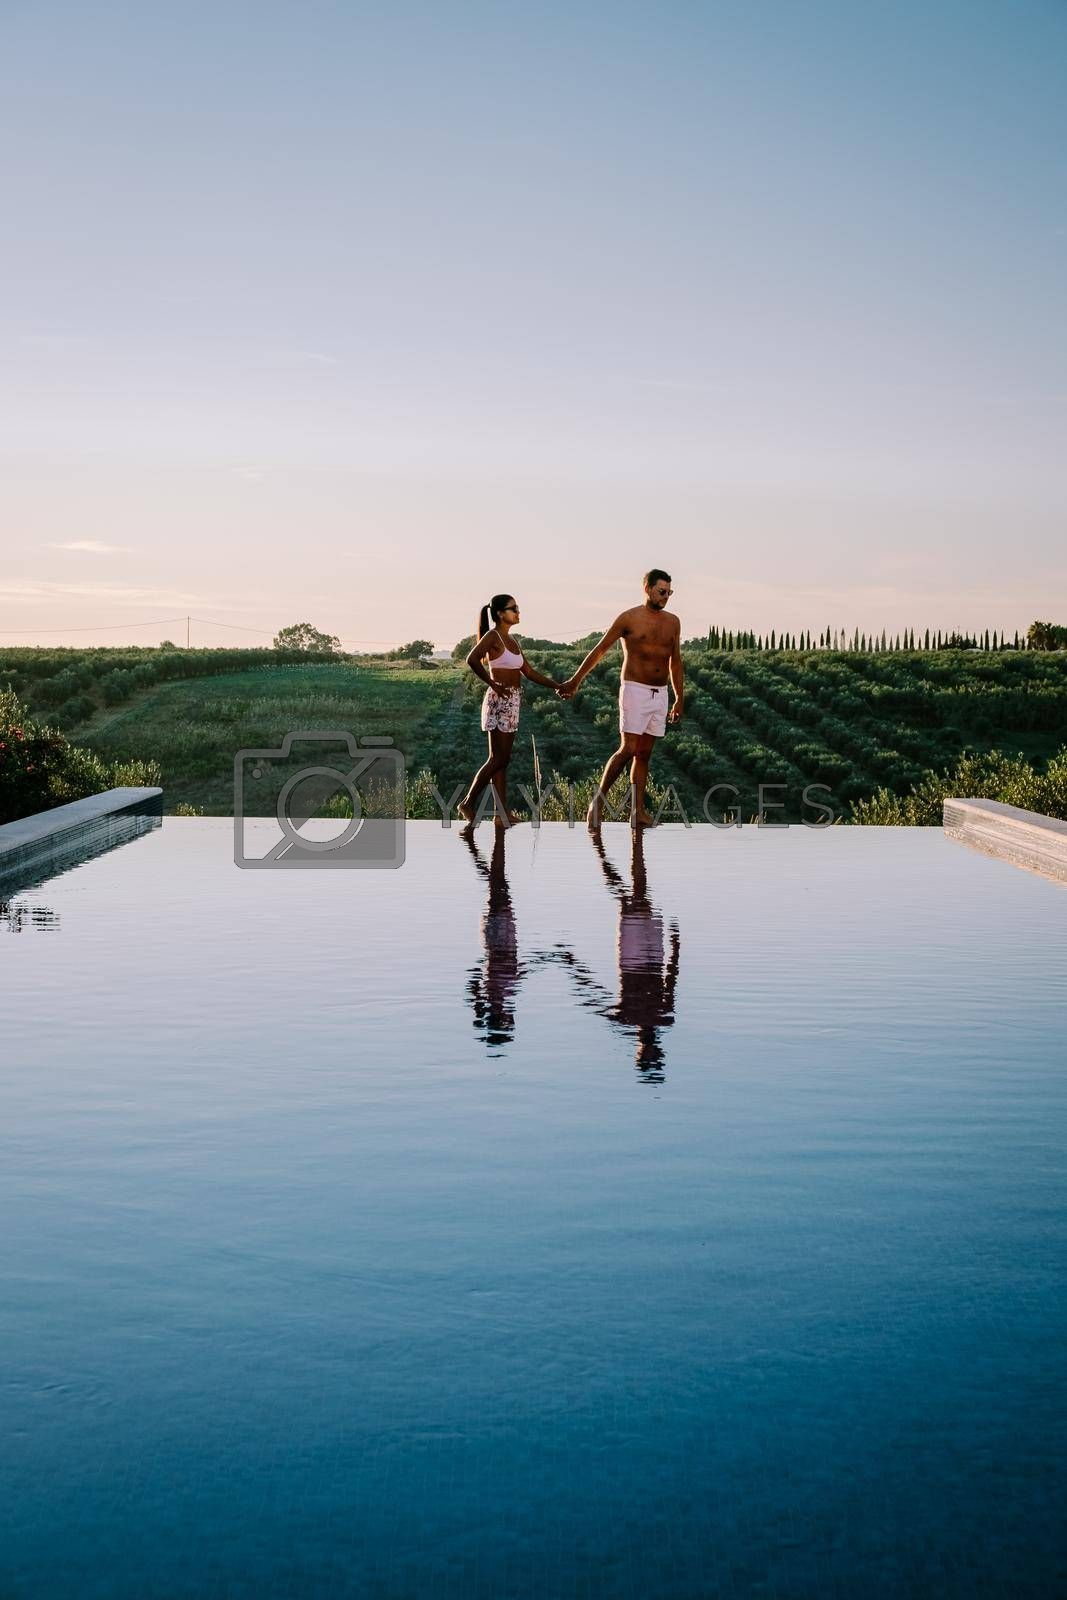 Luxury resort with a view over the wine field in Selinunte Sicily Italy. infinity pool with a view over wine fields in Sicilia, a couple on luxury vacation at the Island of Sicily Italy